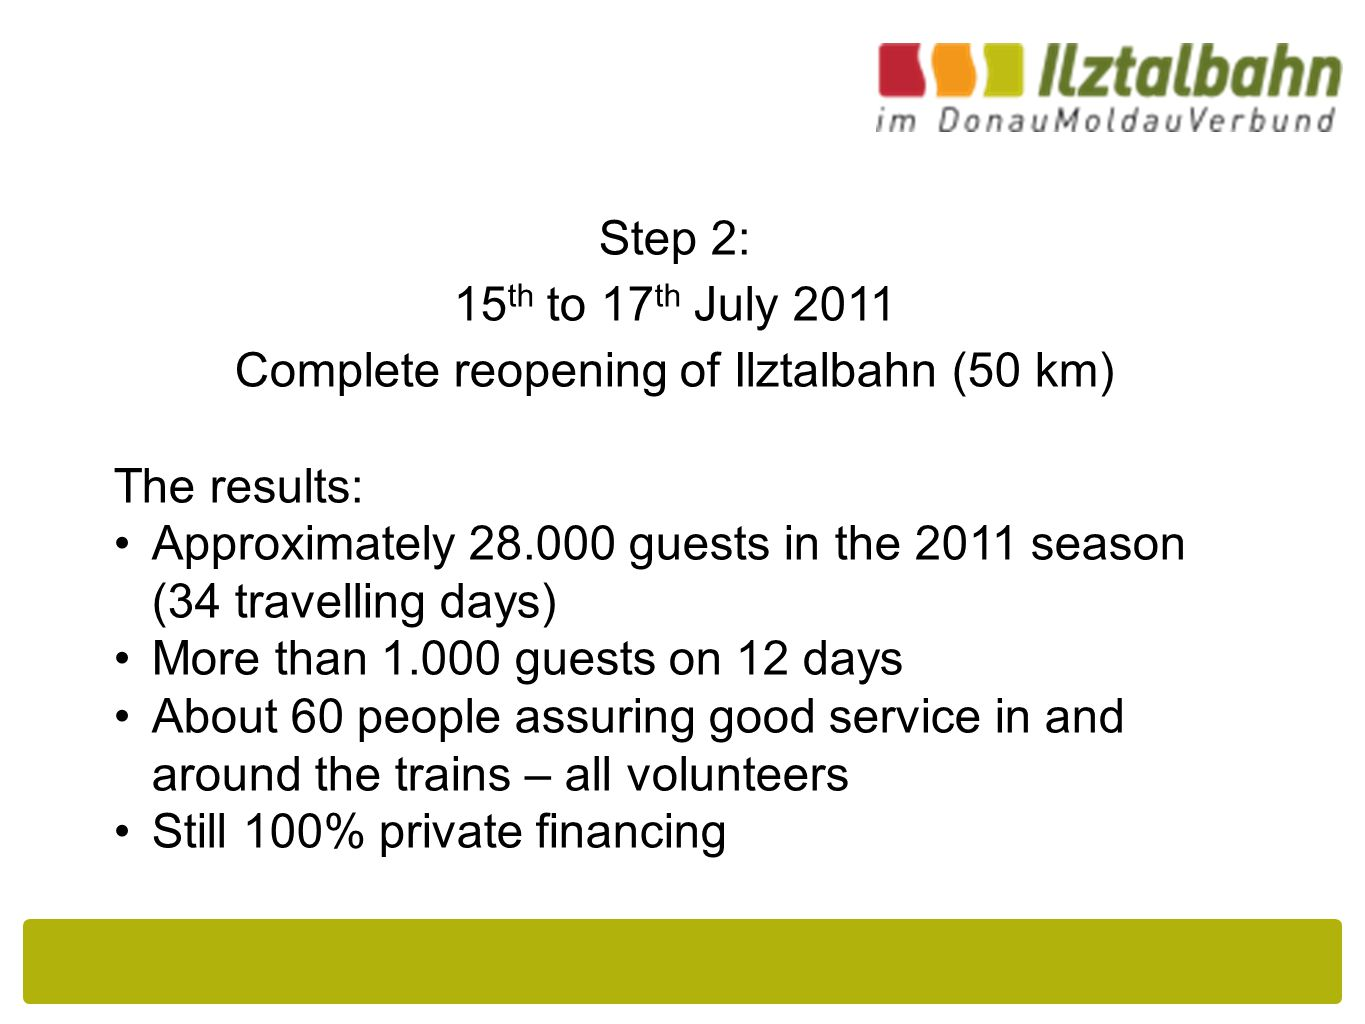 Step 2: 15 th to 17 th July 2011 Complete reopening of Ilztalbahn (50 km) The results: Approximately 28.000 guests in the 2011 season (34 travelling days) More than 1.000 guests on 12 days About 60 people assuring good service in and around the trains – all volunteers Still 100% private financing